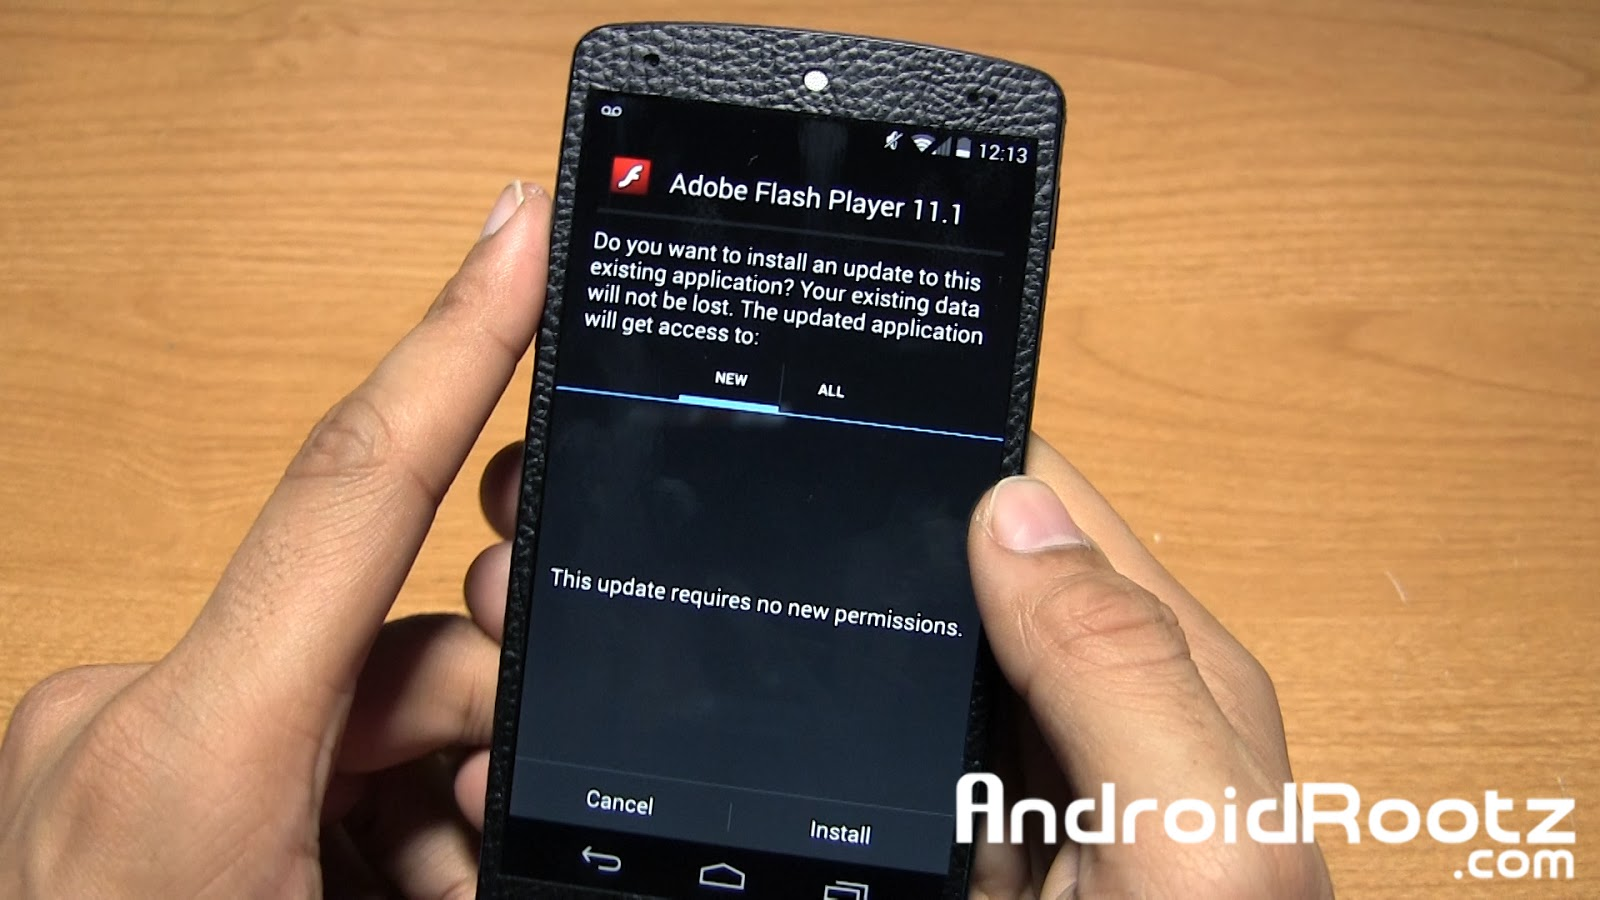 Phone Free Download Adobe Flash Player For Android Mobile Phone how to install flash player on any android kitkat device once the download is complete adobe apk tap in your notifications